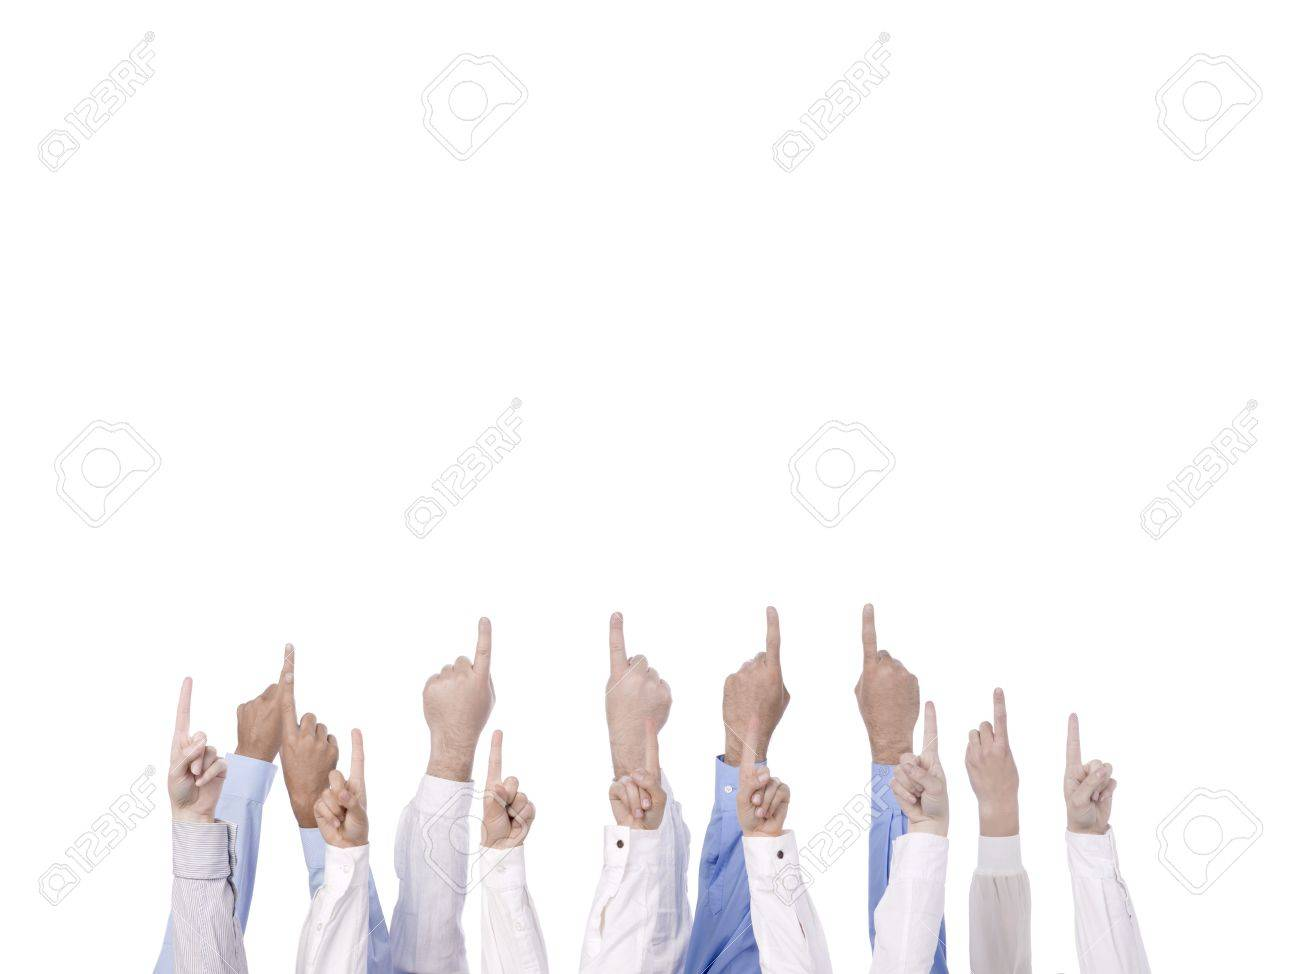 Group of hands pointing upward isolated in a white background Stock Photo - 17484667